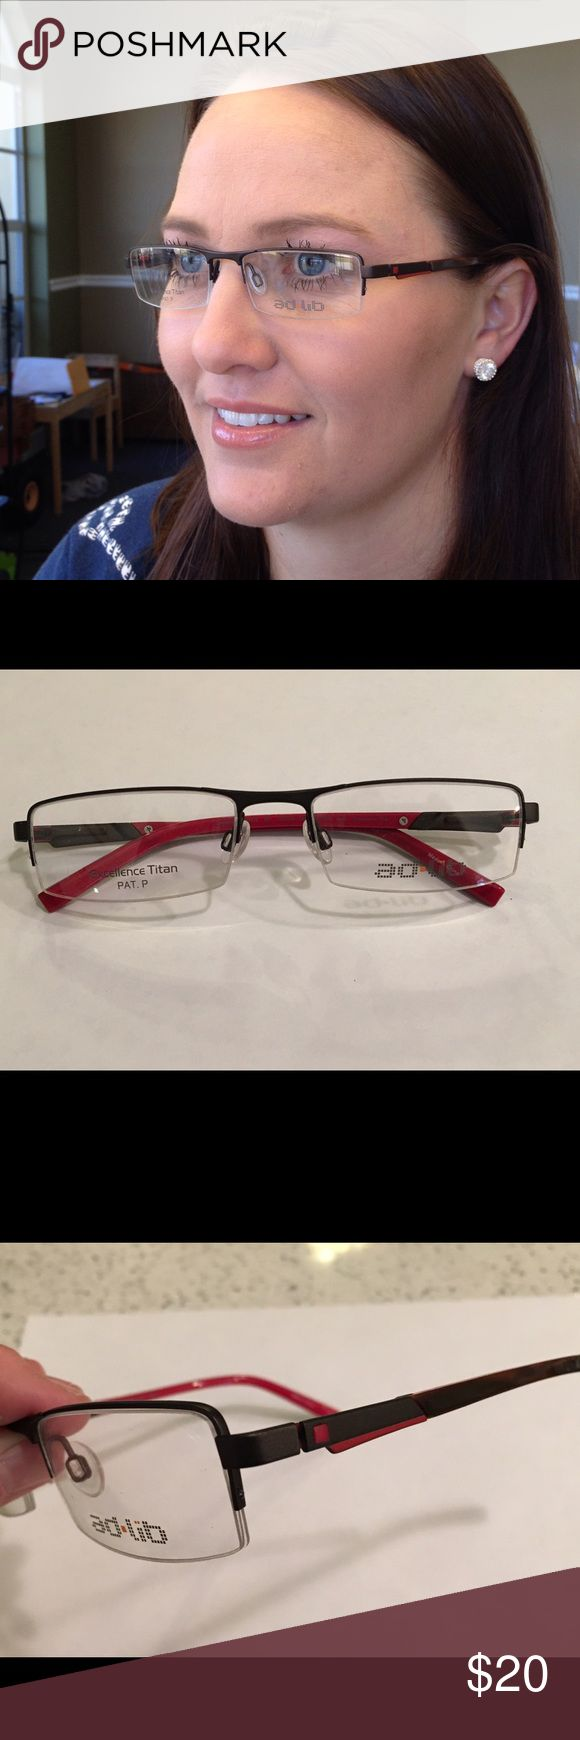 Excellence Titanium Ad Lib Frame! Extremely Lightweight, Awesome Quality by Charmant. Dark Brown (almost black) w/ Red Accents. Semi-Rimless design adds more to Lightweight aspect. Top bar adds sporty look, works great for medium sized face, either gender. First time listed as I set rock bottom pricing, to move all frames! Ad Lib Accessories Glasses